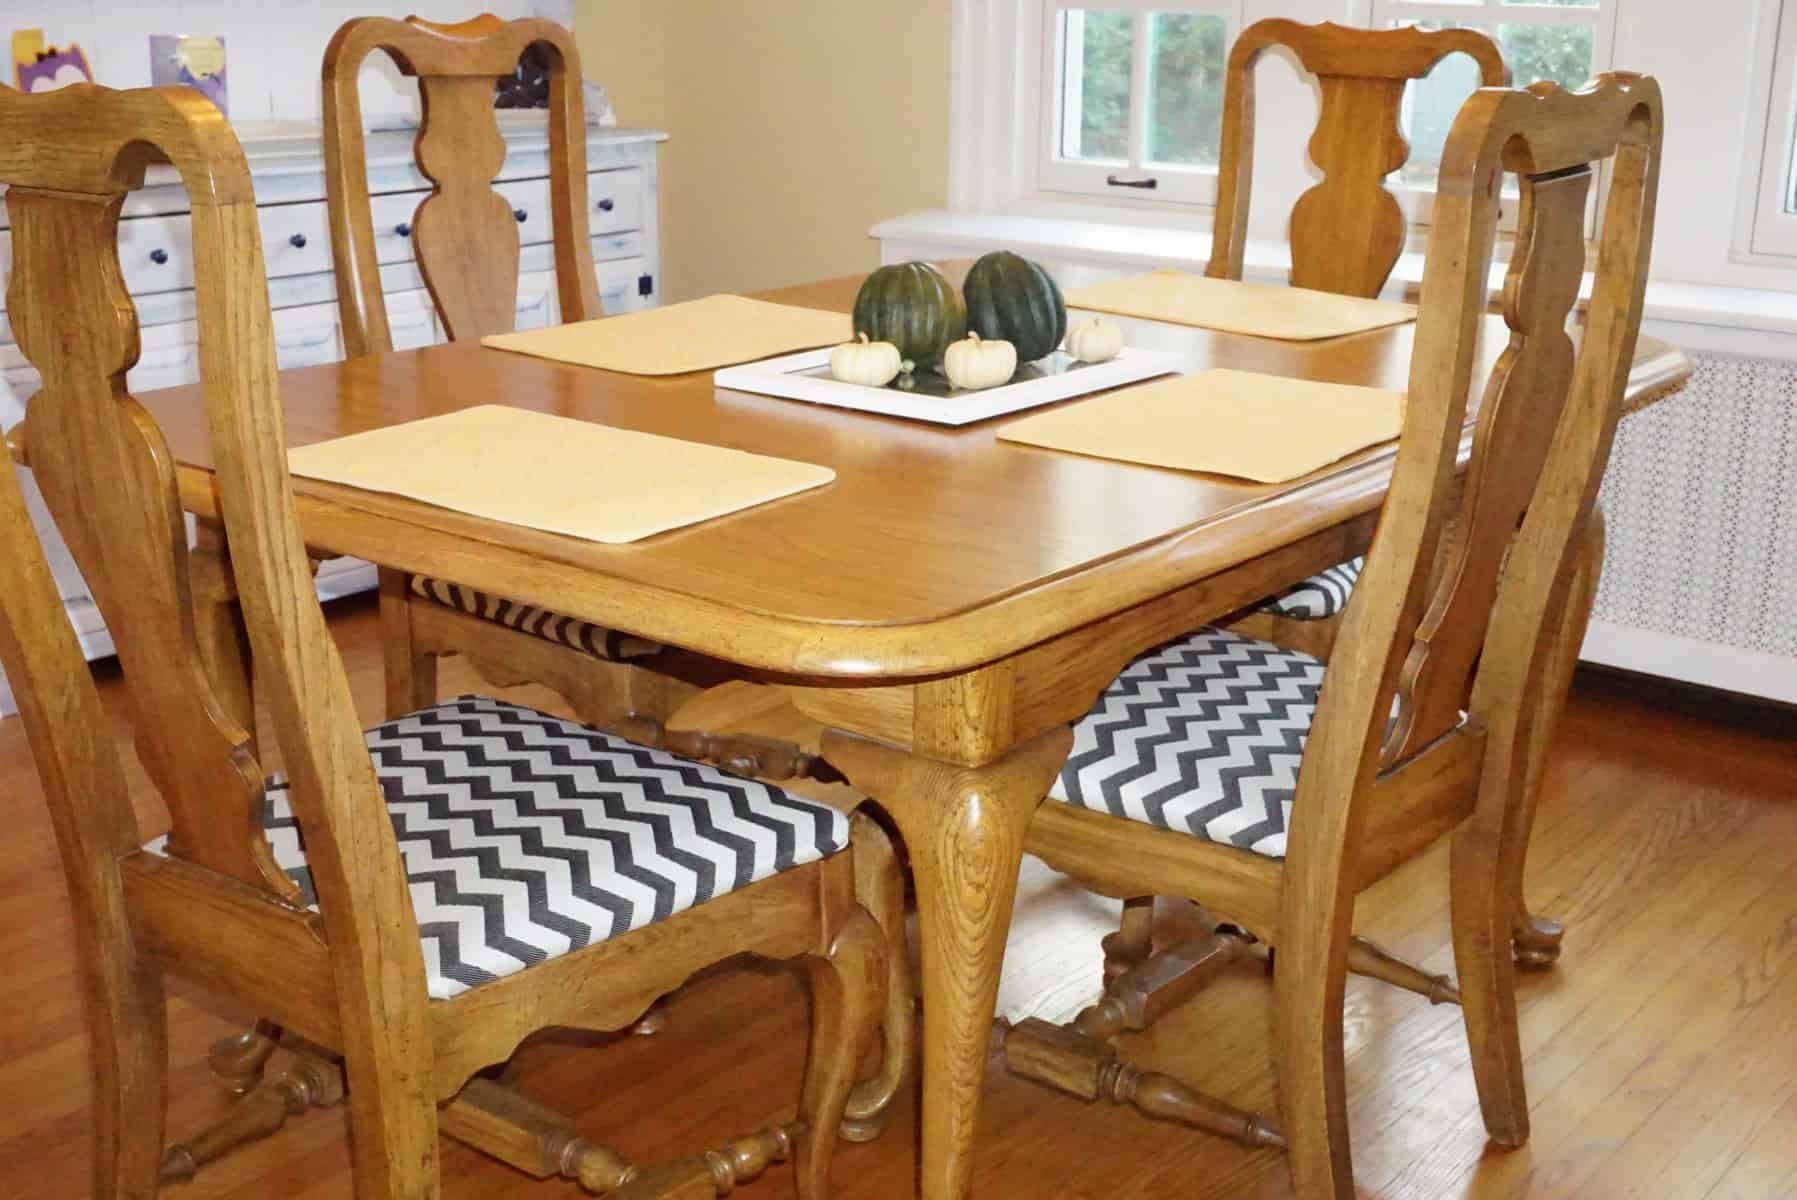 How to Reupholster Dining Room Chair Seat Covers - Sitting Pretty ...